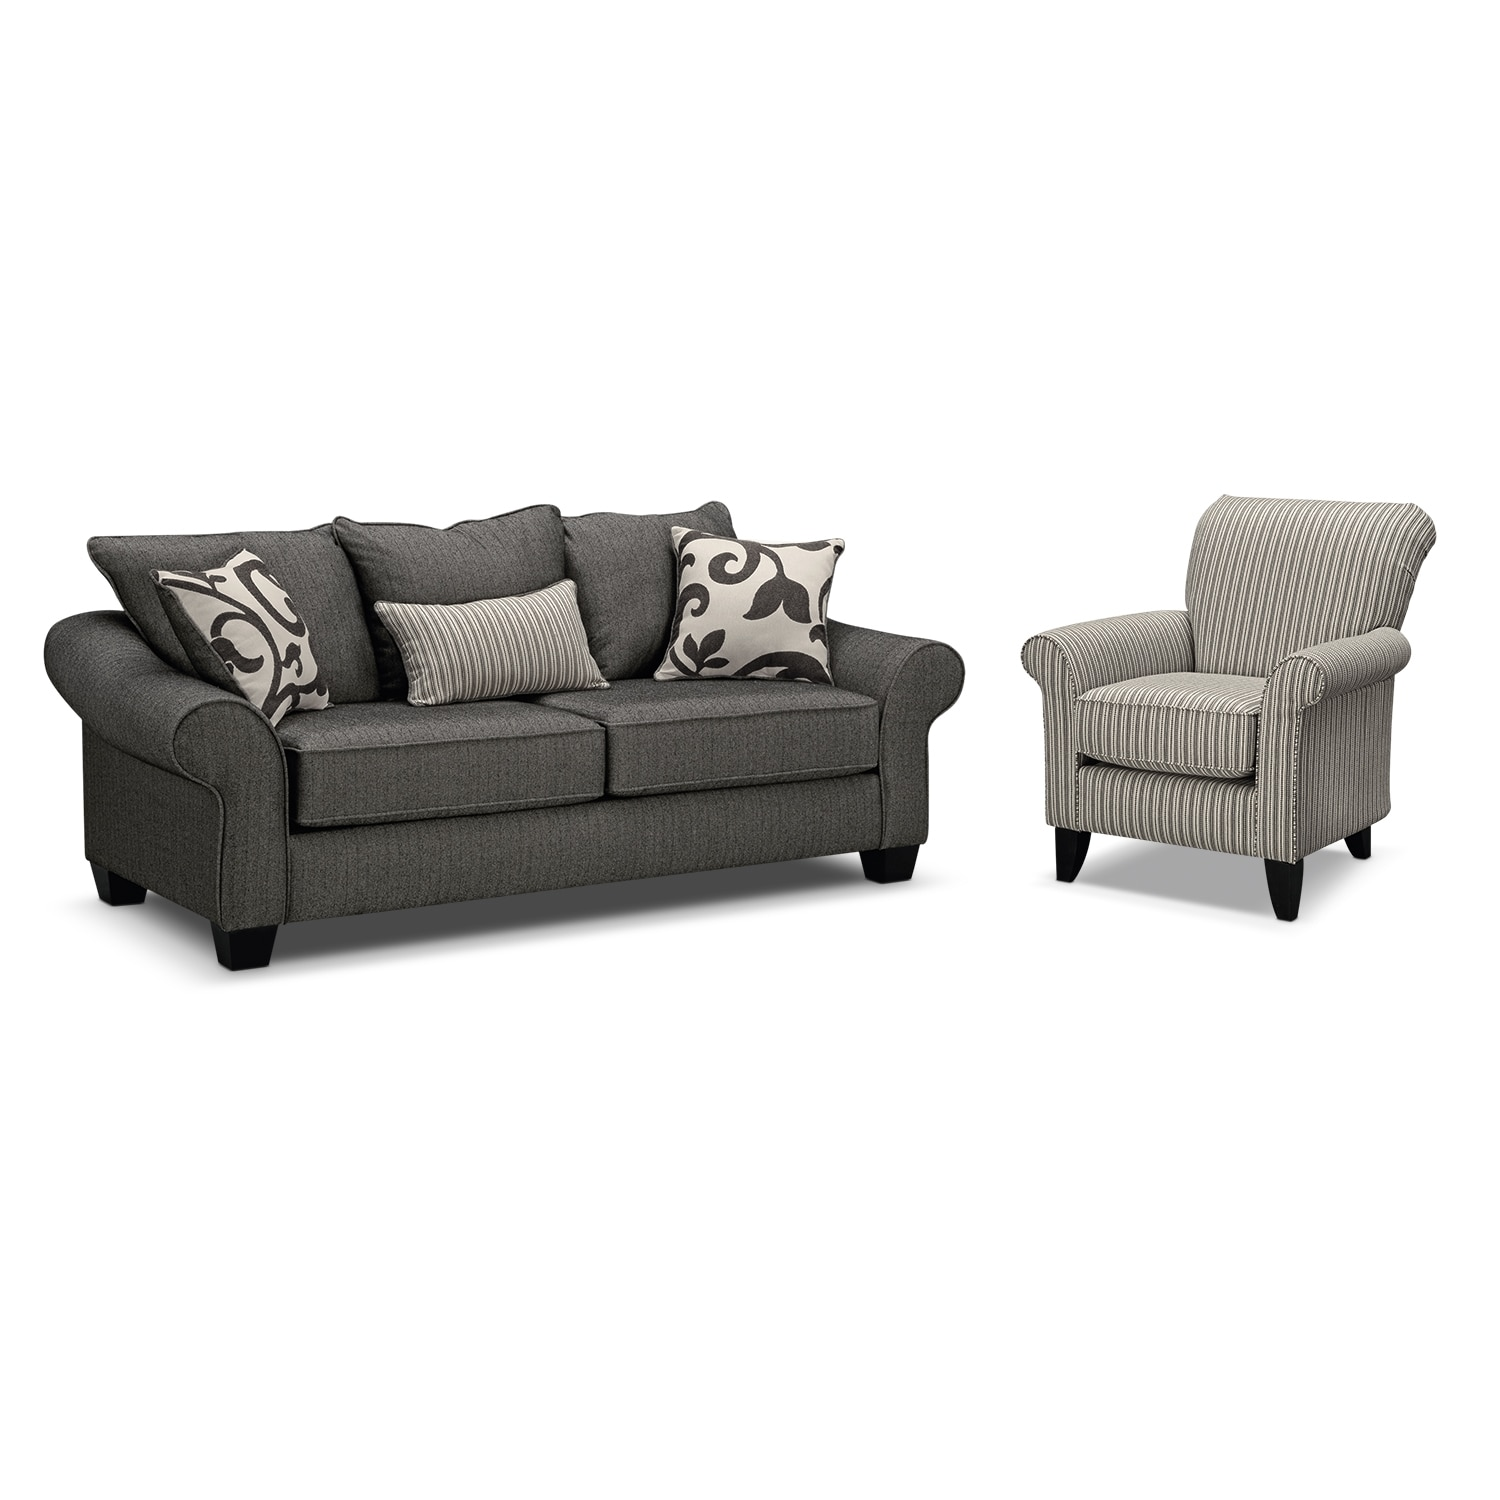 furniture colette full memory foam sleeper sofa and accent chair set